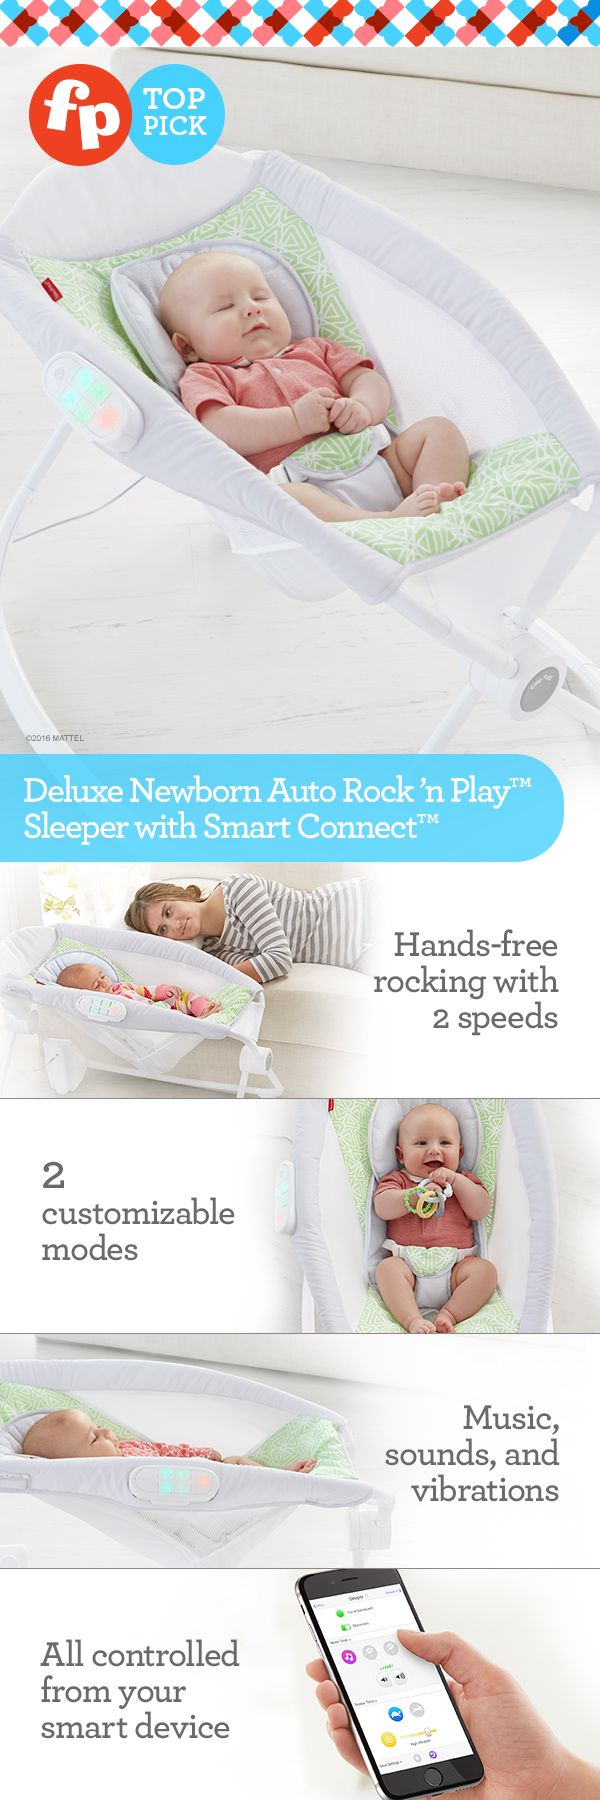 Sleeper & playtime rocker in one! Late nights. Middle of the nights. Early mornings. Mid-day meltdowns. Nothing a cozy sleeper with just-the-right angle and plush fabrics can't help. With the addition of hands-free rocking with two speeds, two customizable modes, music, sounds and vibration, this is the ultimate sweet dream machine. Simply download the Smart Connect™ app to activate gentle, hands-free rocking or to turn on the calming music without disturbing baby.